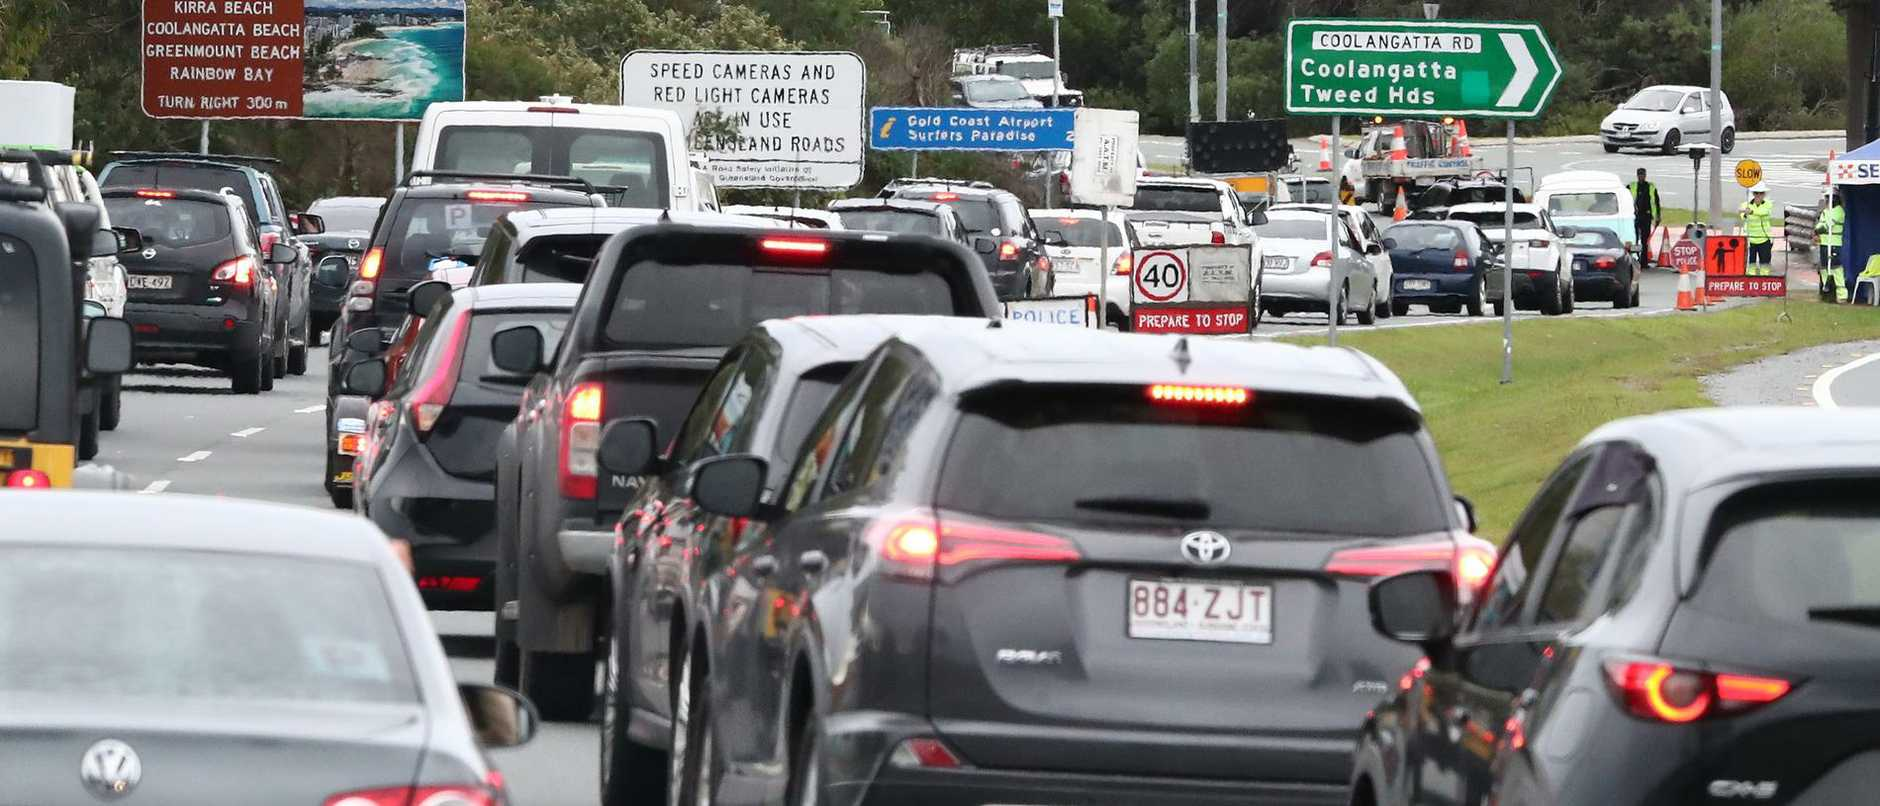 QLD_GCB_BORDER_12JUL20